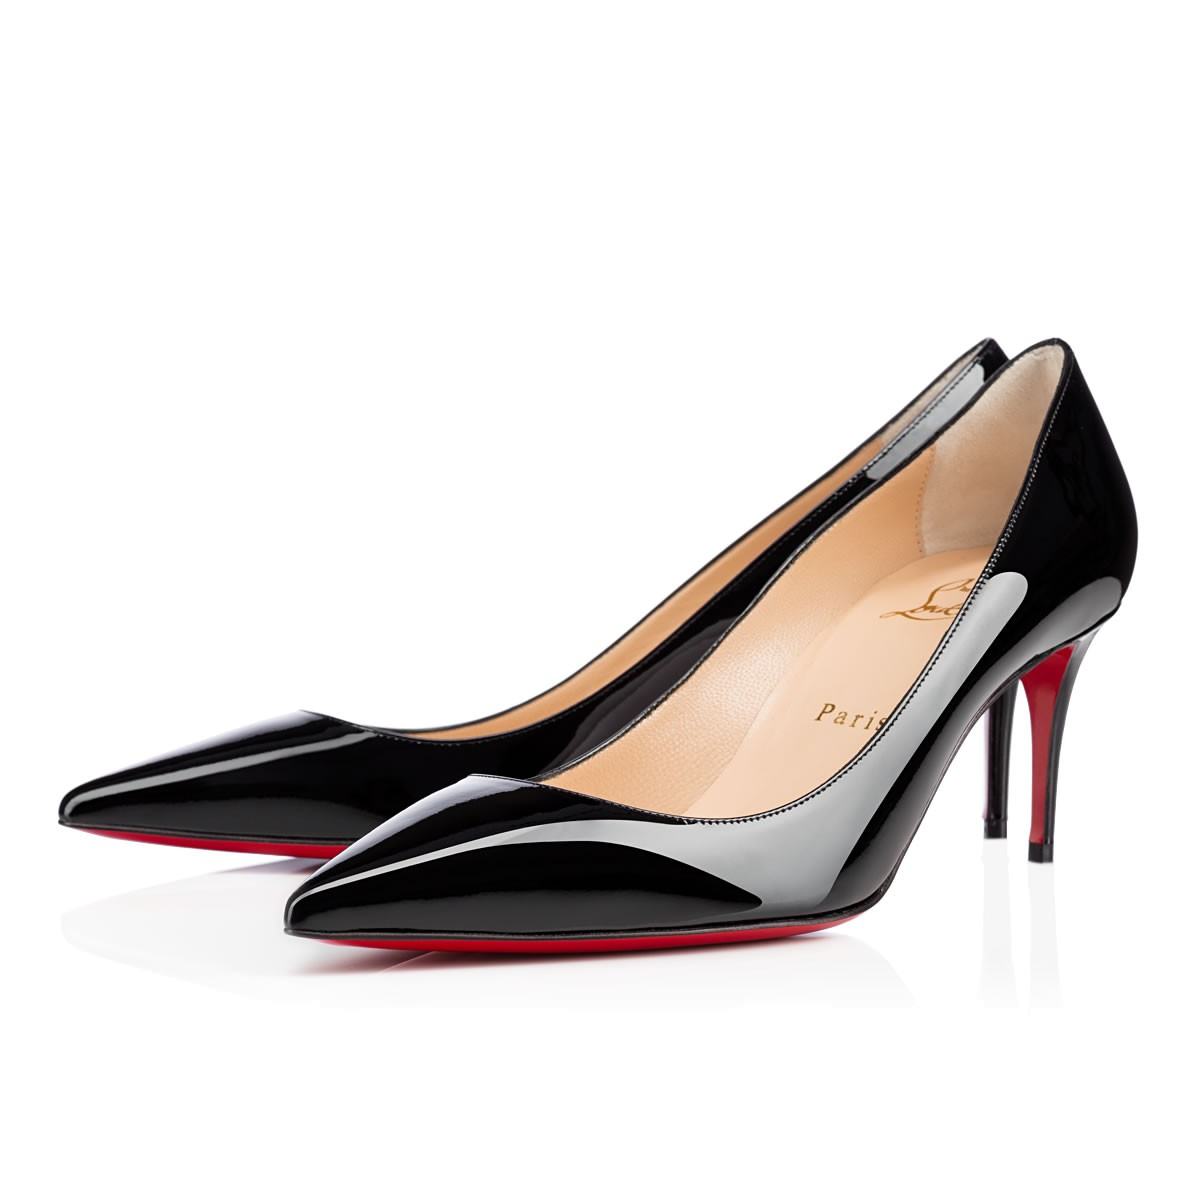 20b2bc1d214f Christian Louboutin Decollete Pointy Toe Pump In Black